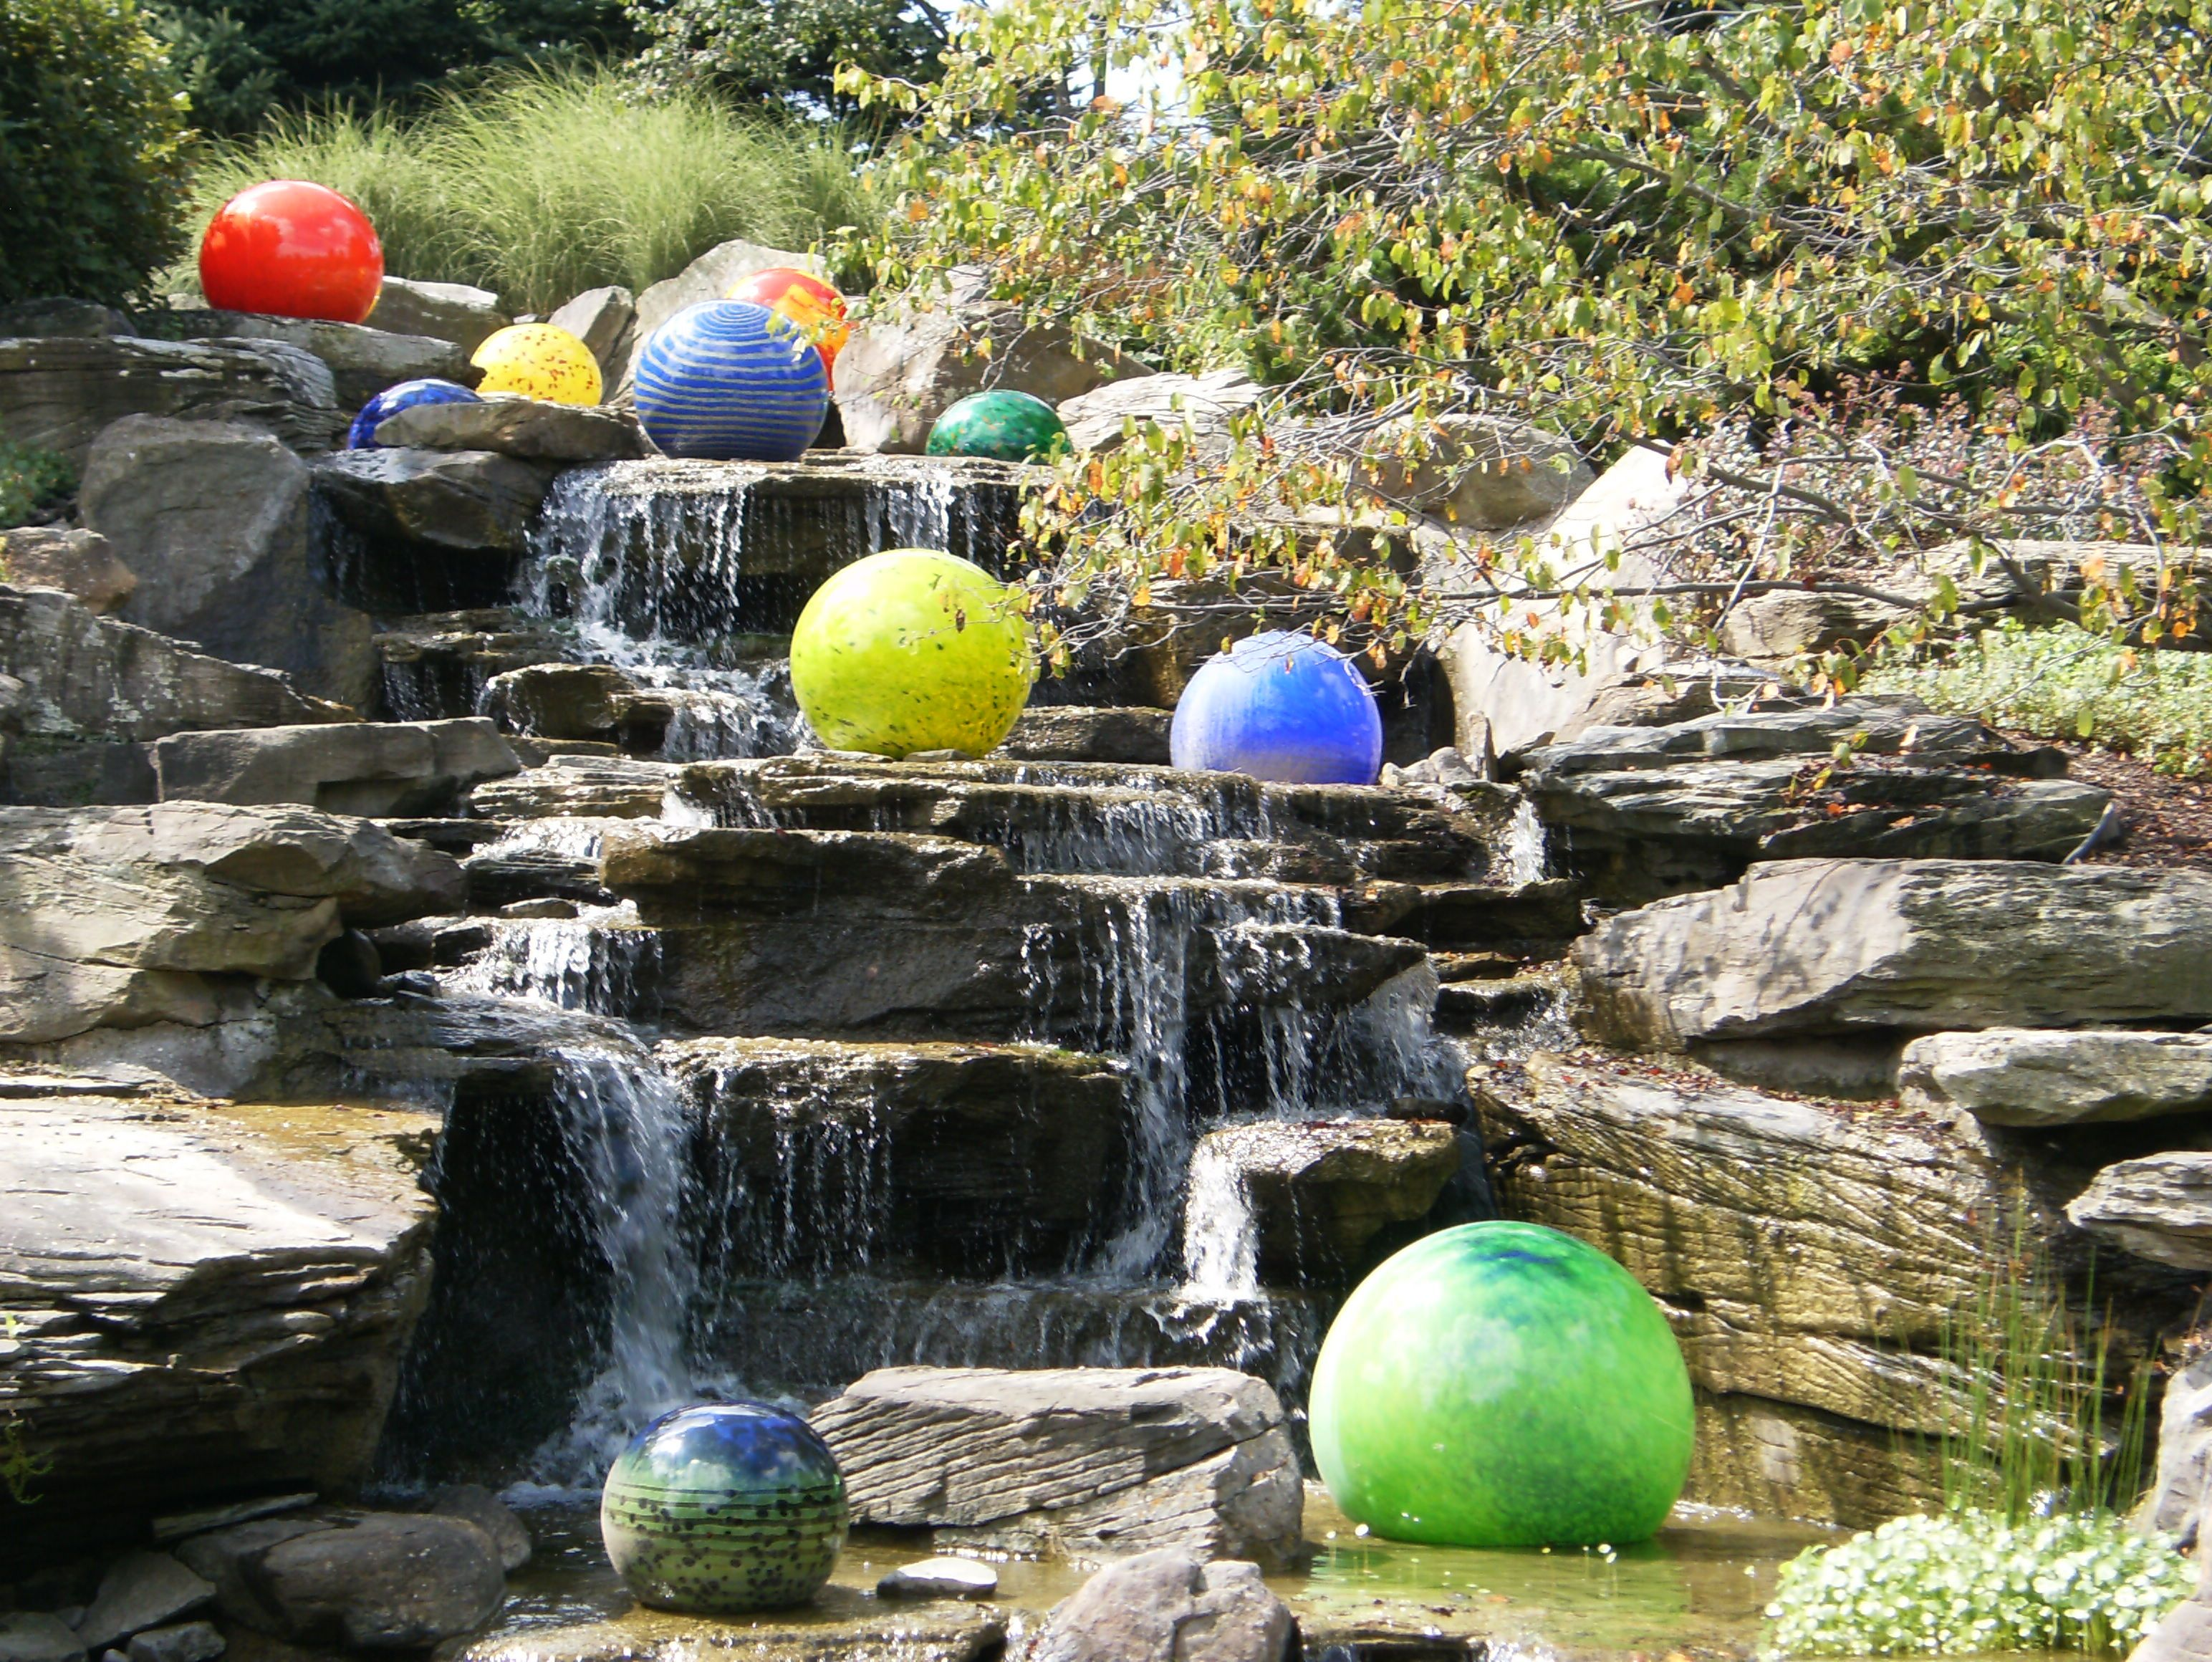 Chihuly glass at meijer gardens near grand rapids